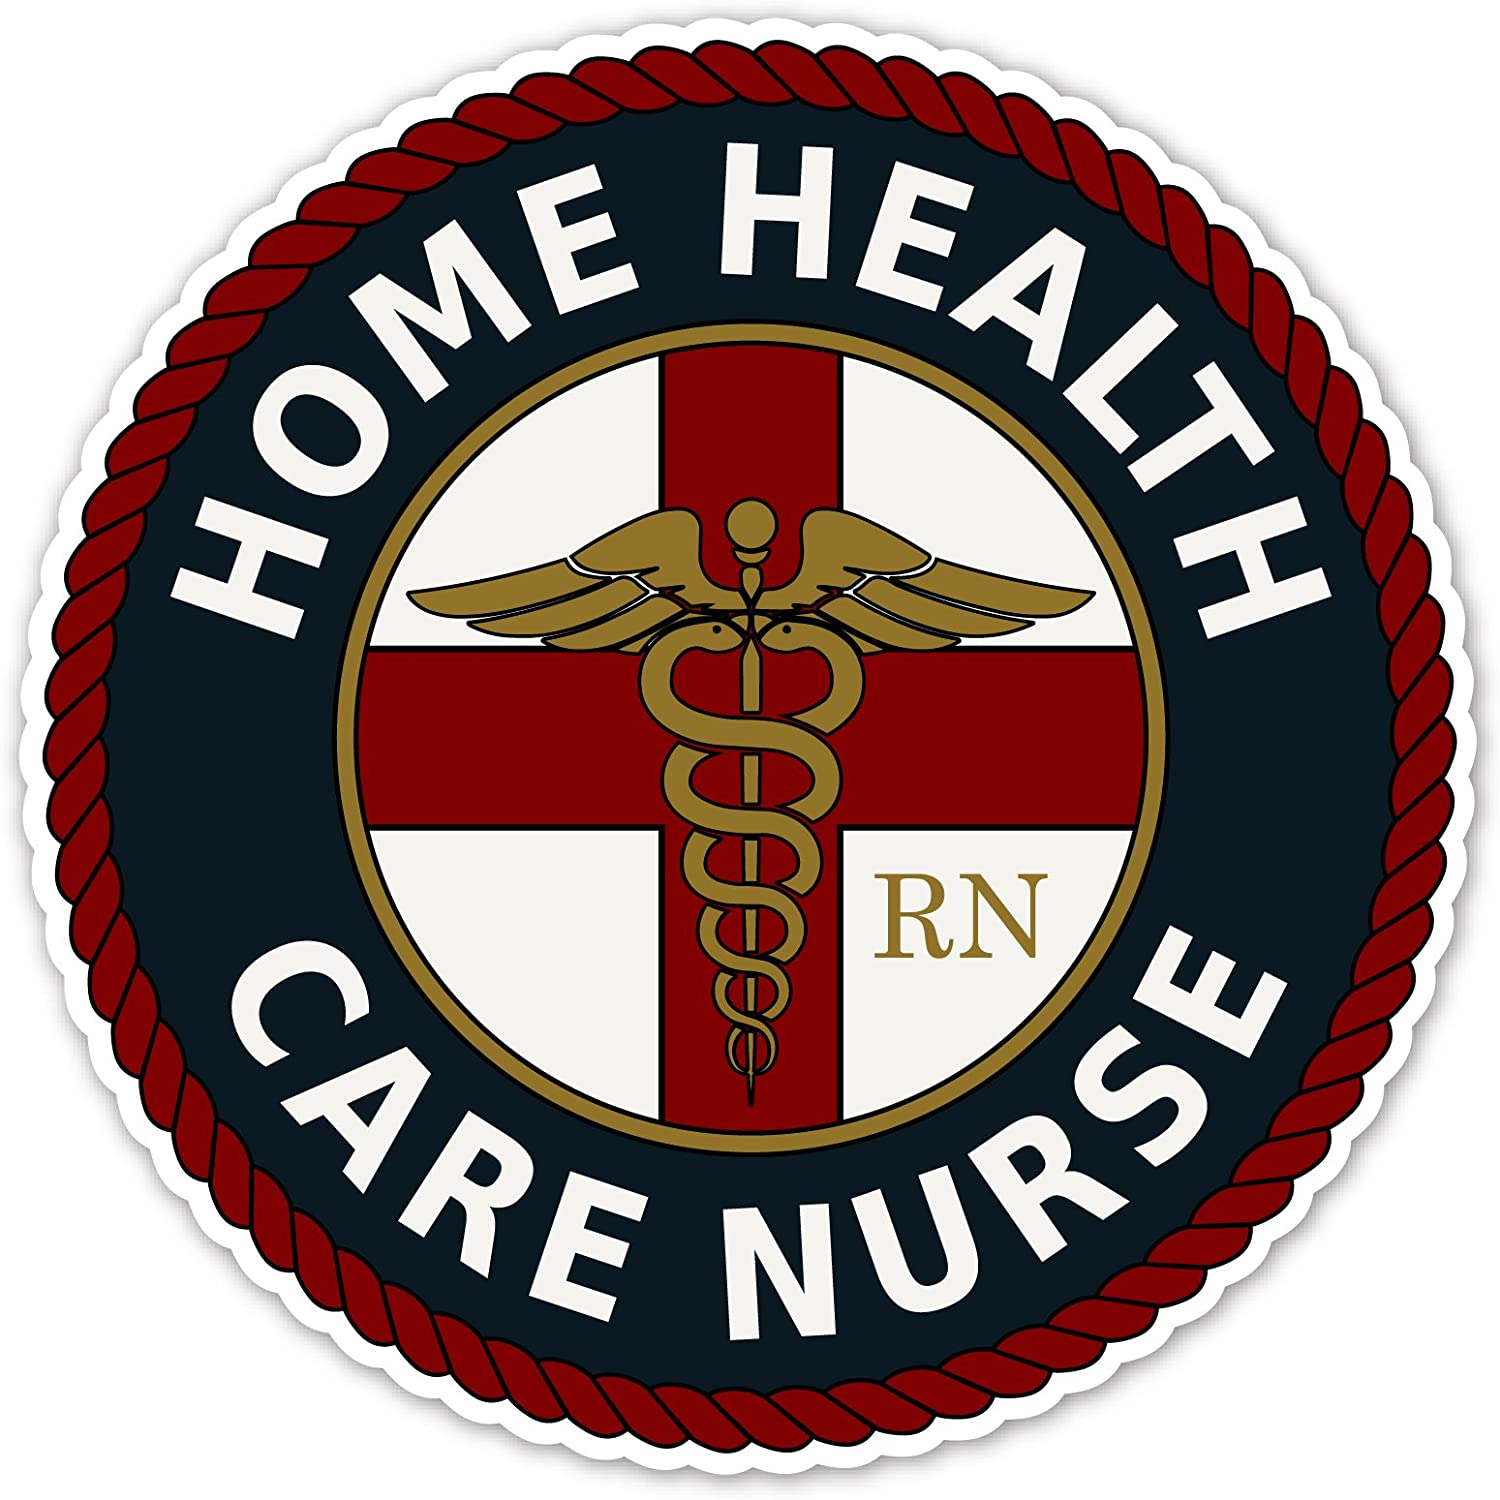 Home Health Care Nurse Certified RN Caduceus Staff of Hermes Gift for Nurse 3M Vinyl Decal Bumper Sticker 5x5 inches